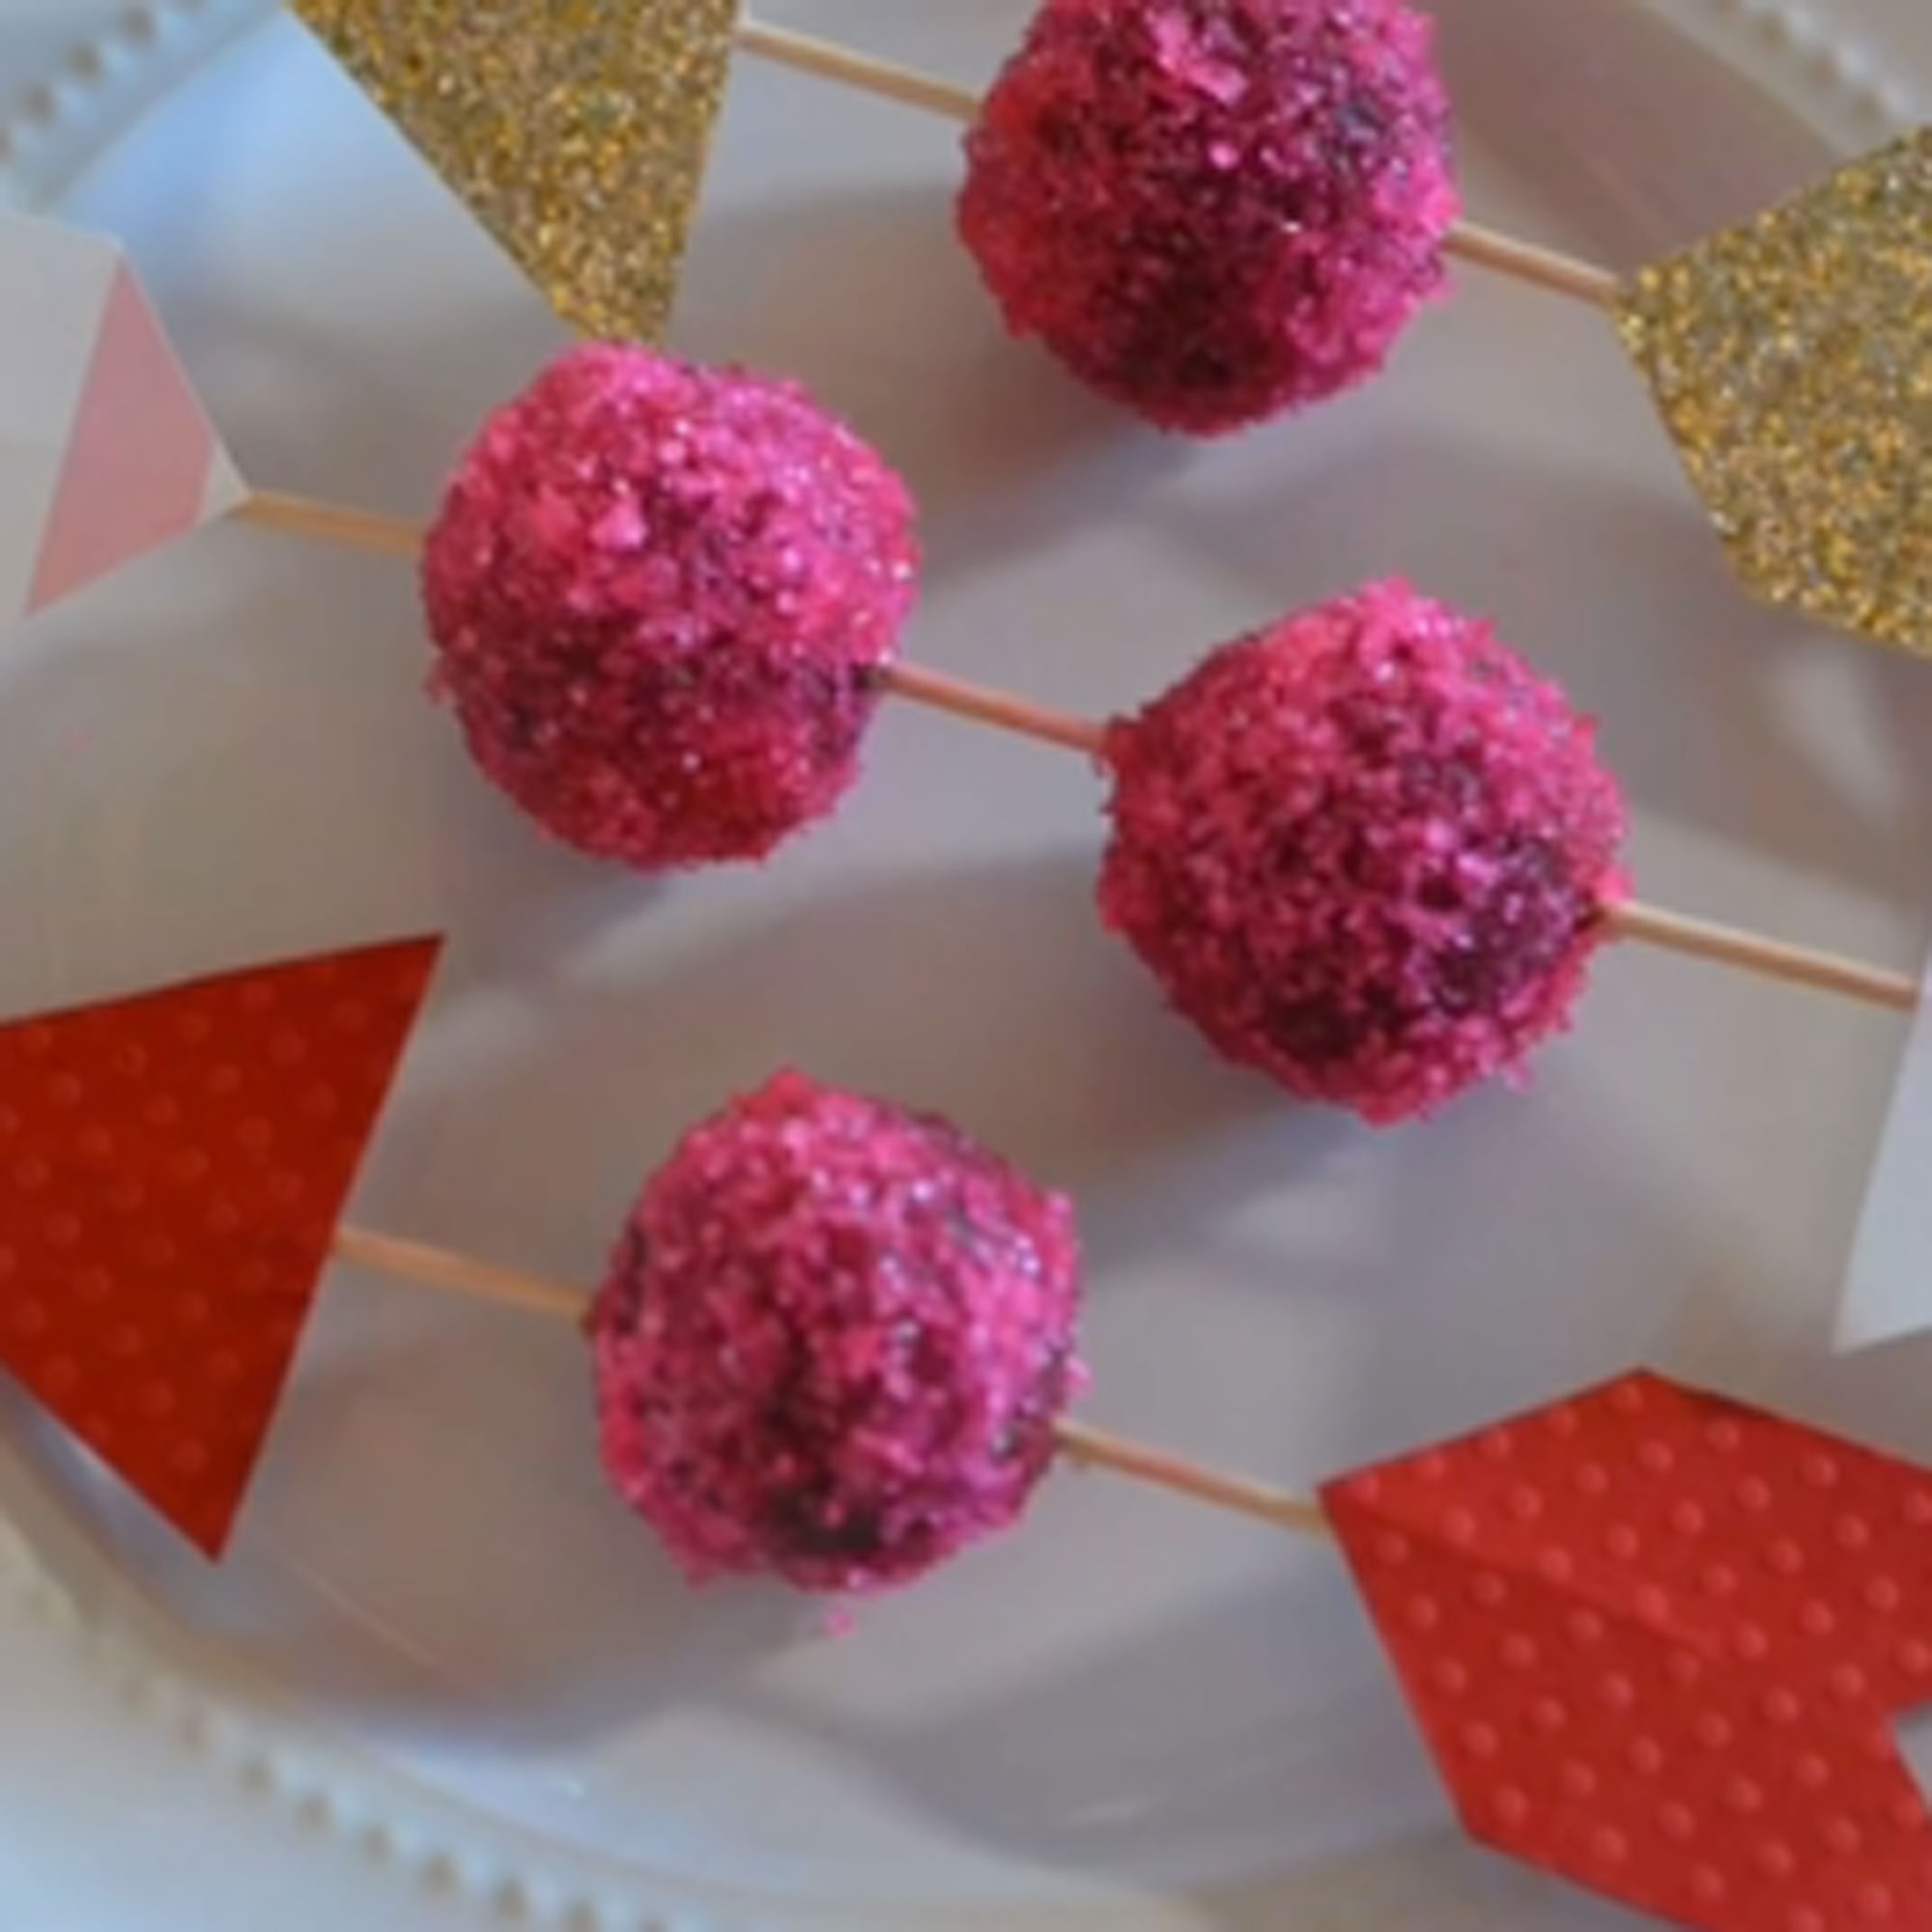 How to Make Cupid's Arrow Truffles